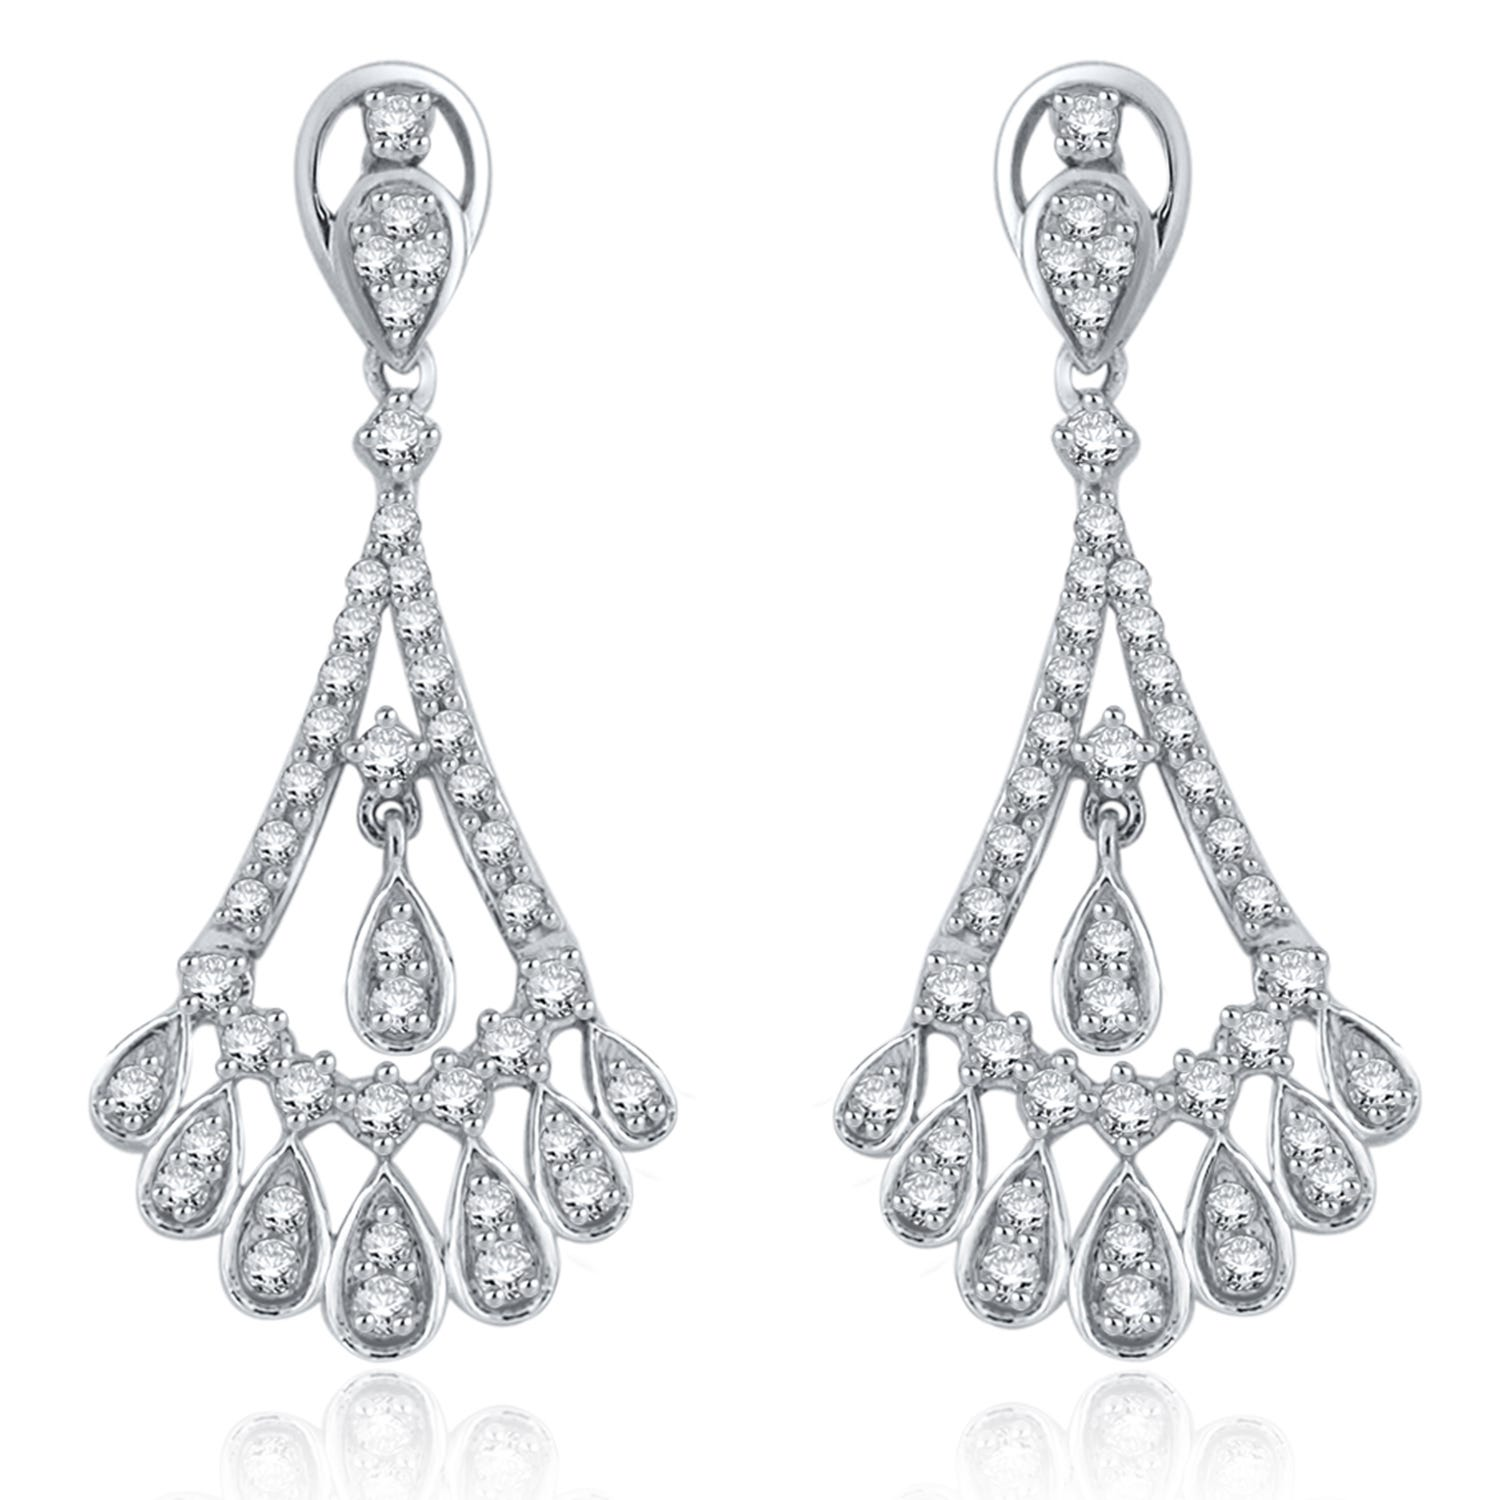 Diamond 1ctw. Fancy Teardrops Chandelier Earrings in 14k White Gold